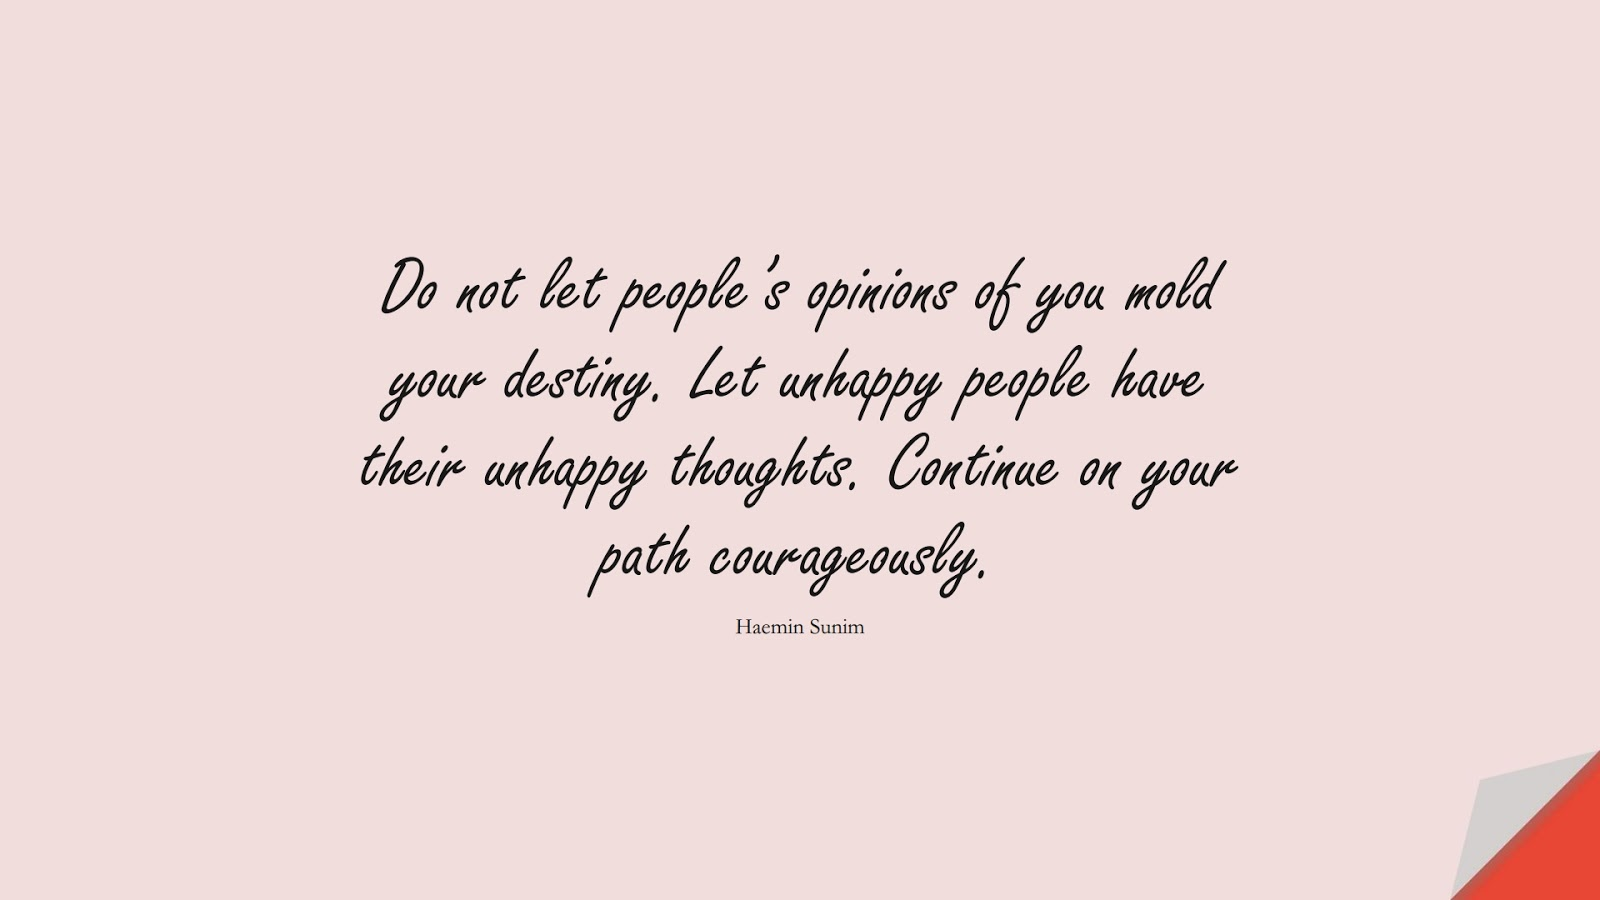 Do not let people's opinions of you mold your destiny. Let unhappy people have their unhappy thoughts. Continue on your path courageously. (Haemin Sunim);  #BeYourselfQuotes